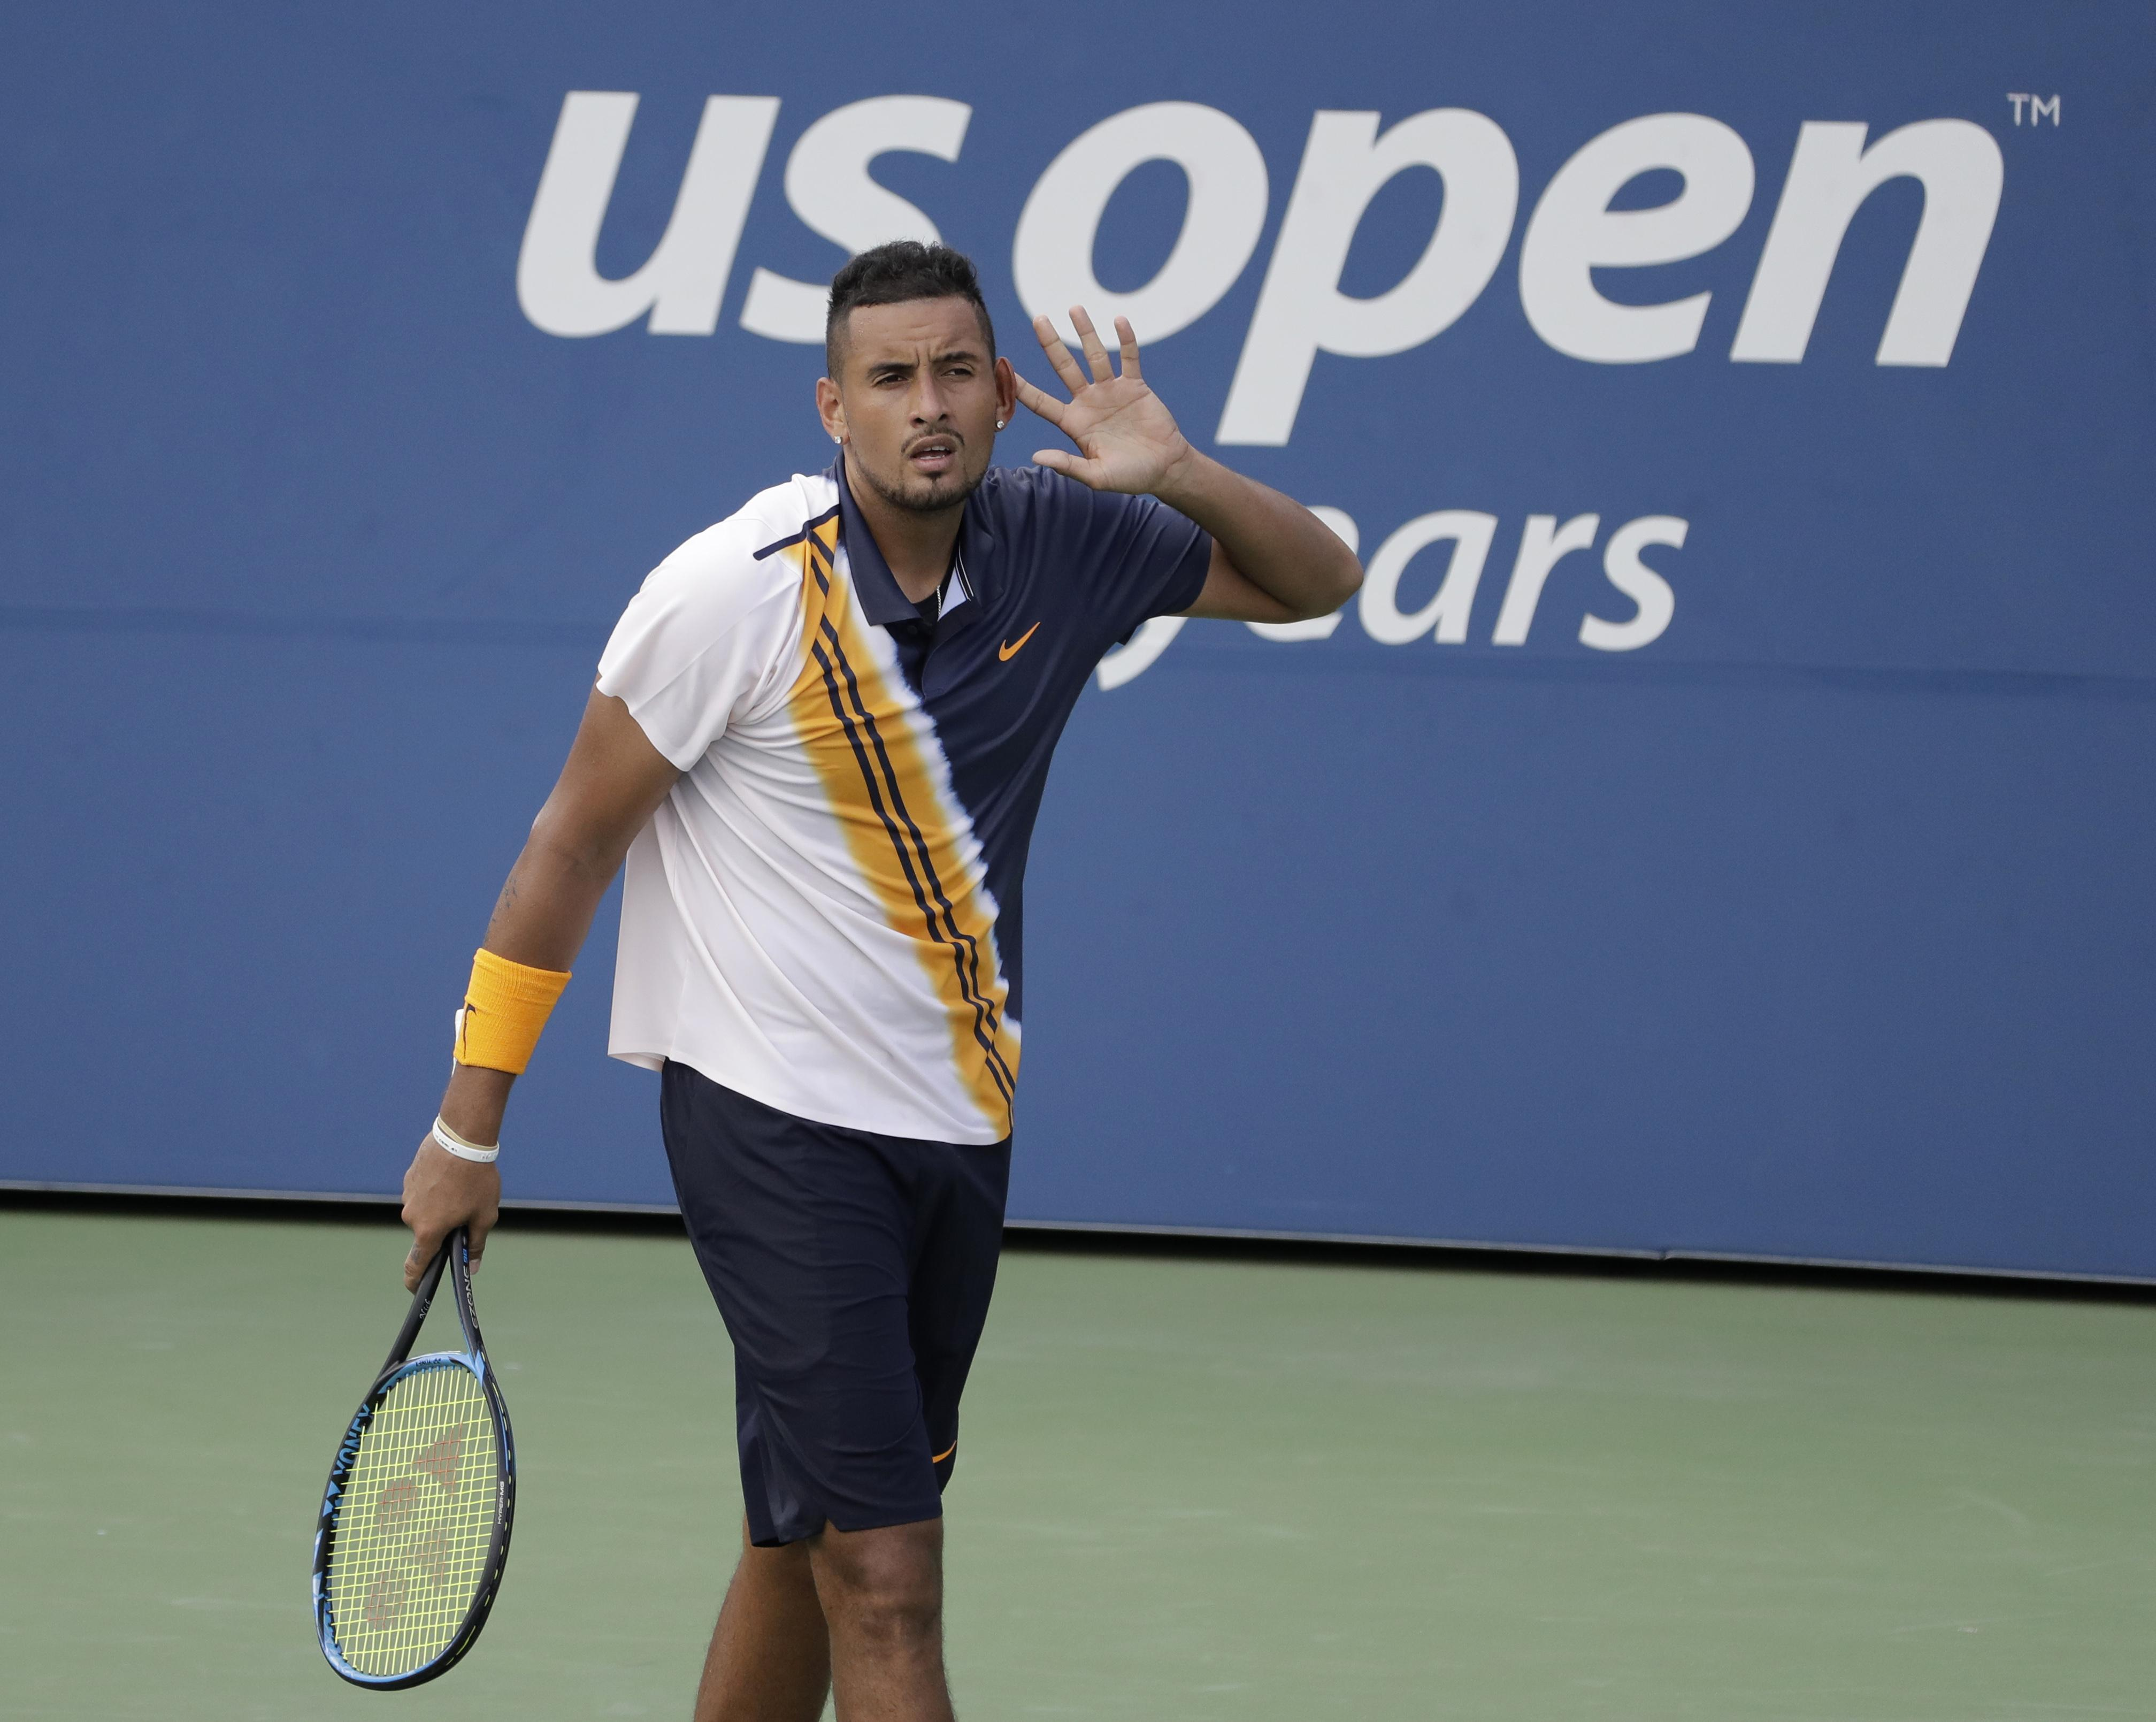 Nick Kyrgios was booed by the US Open crowd after struggling with the heat during first set